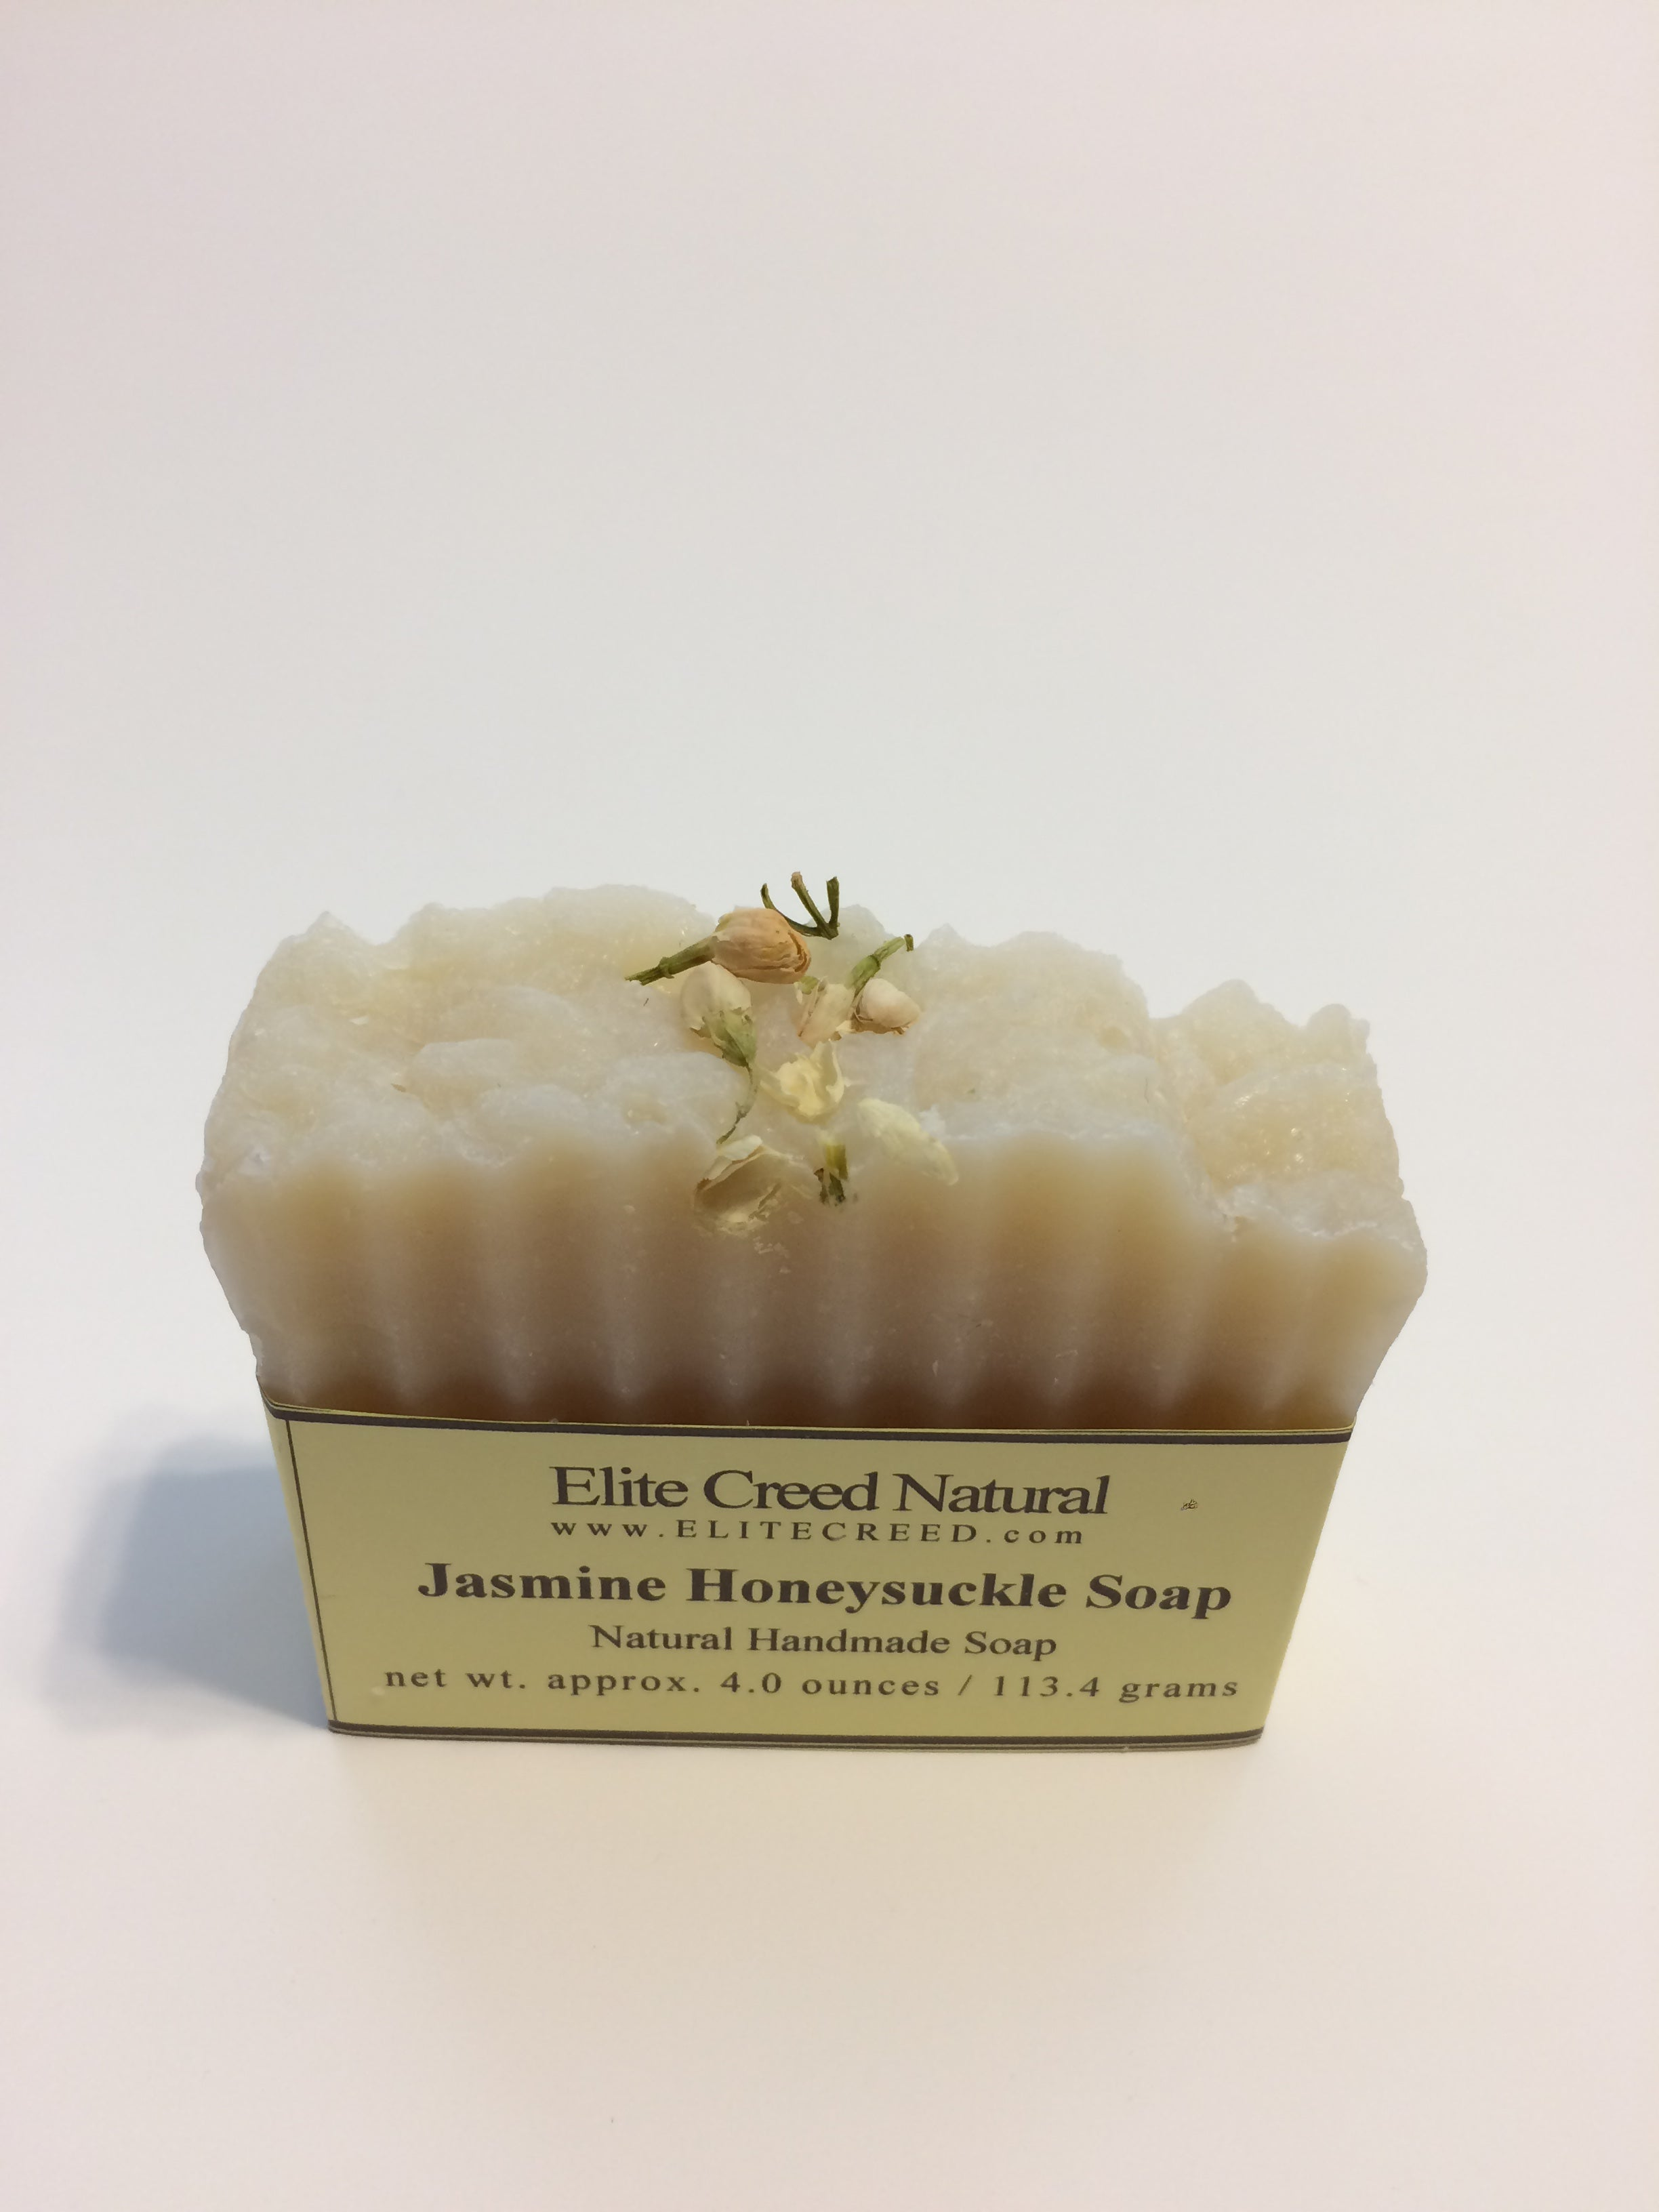 Jasmine Honeysuckle Soap